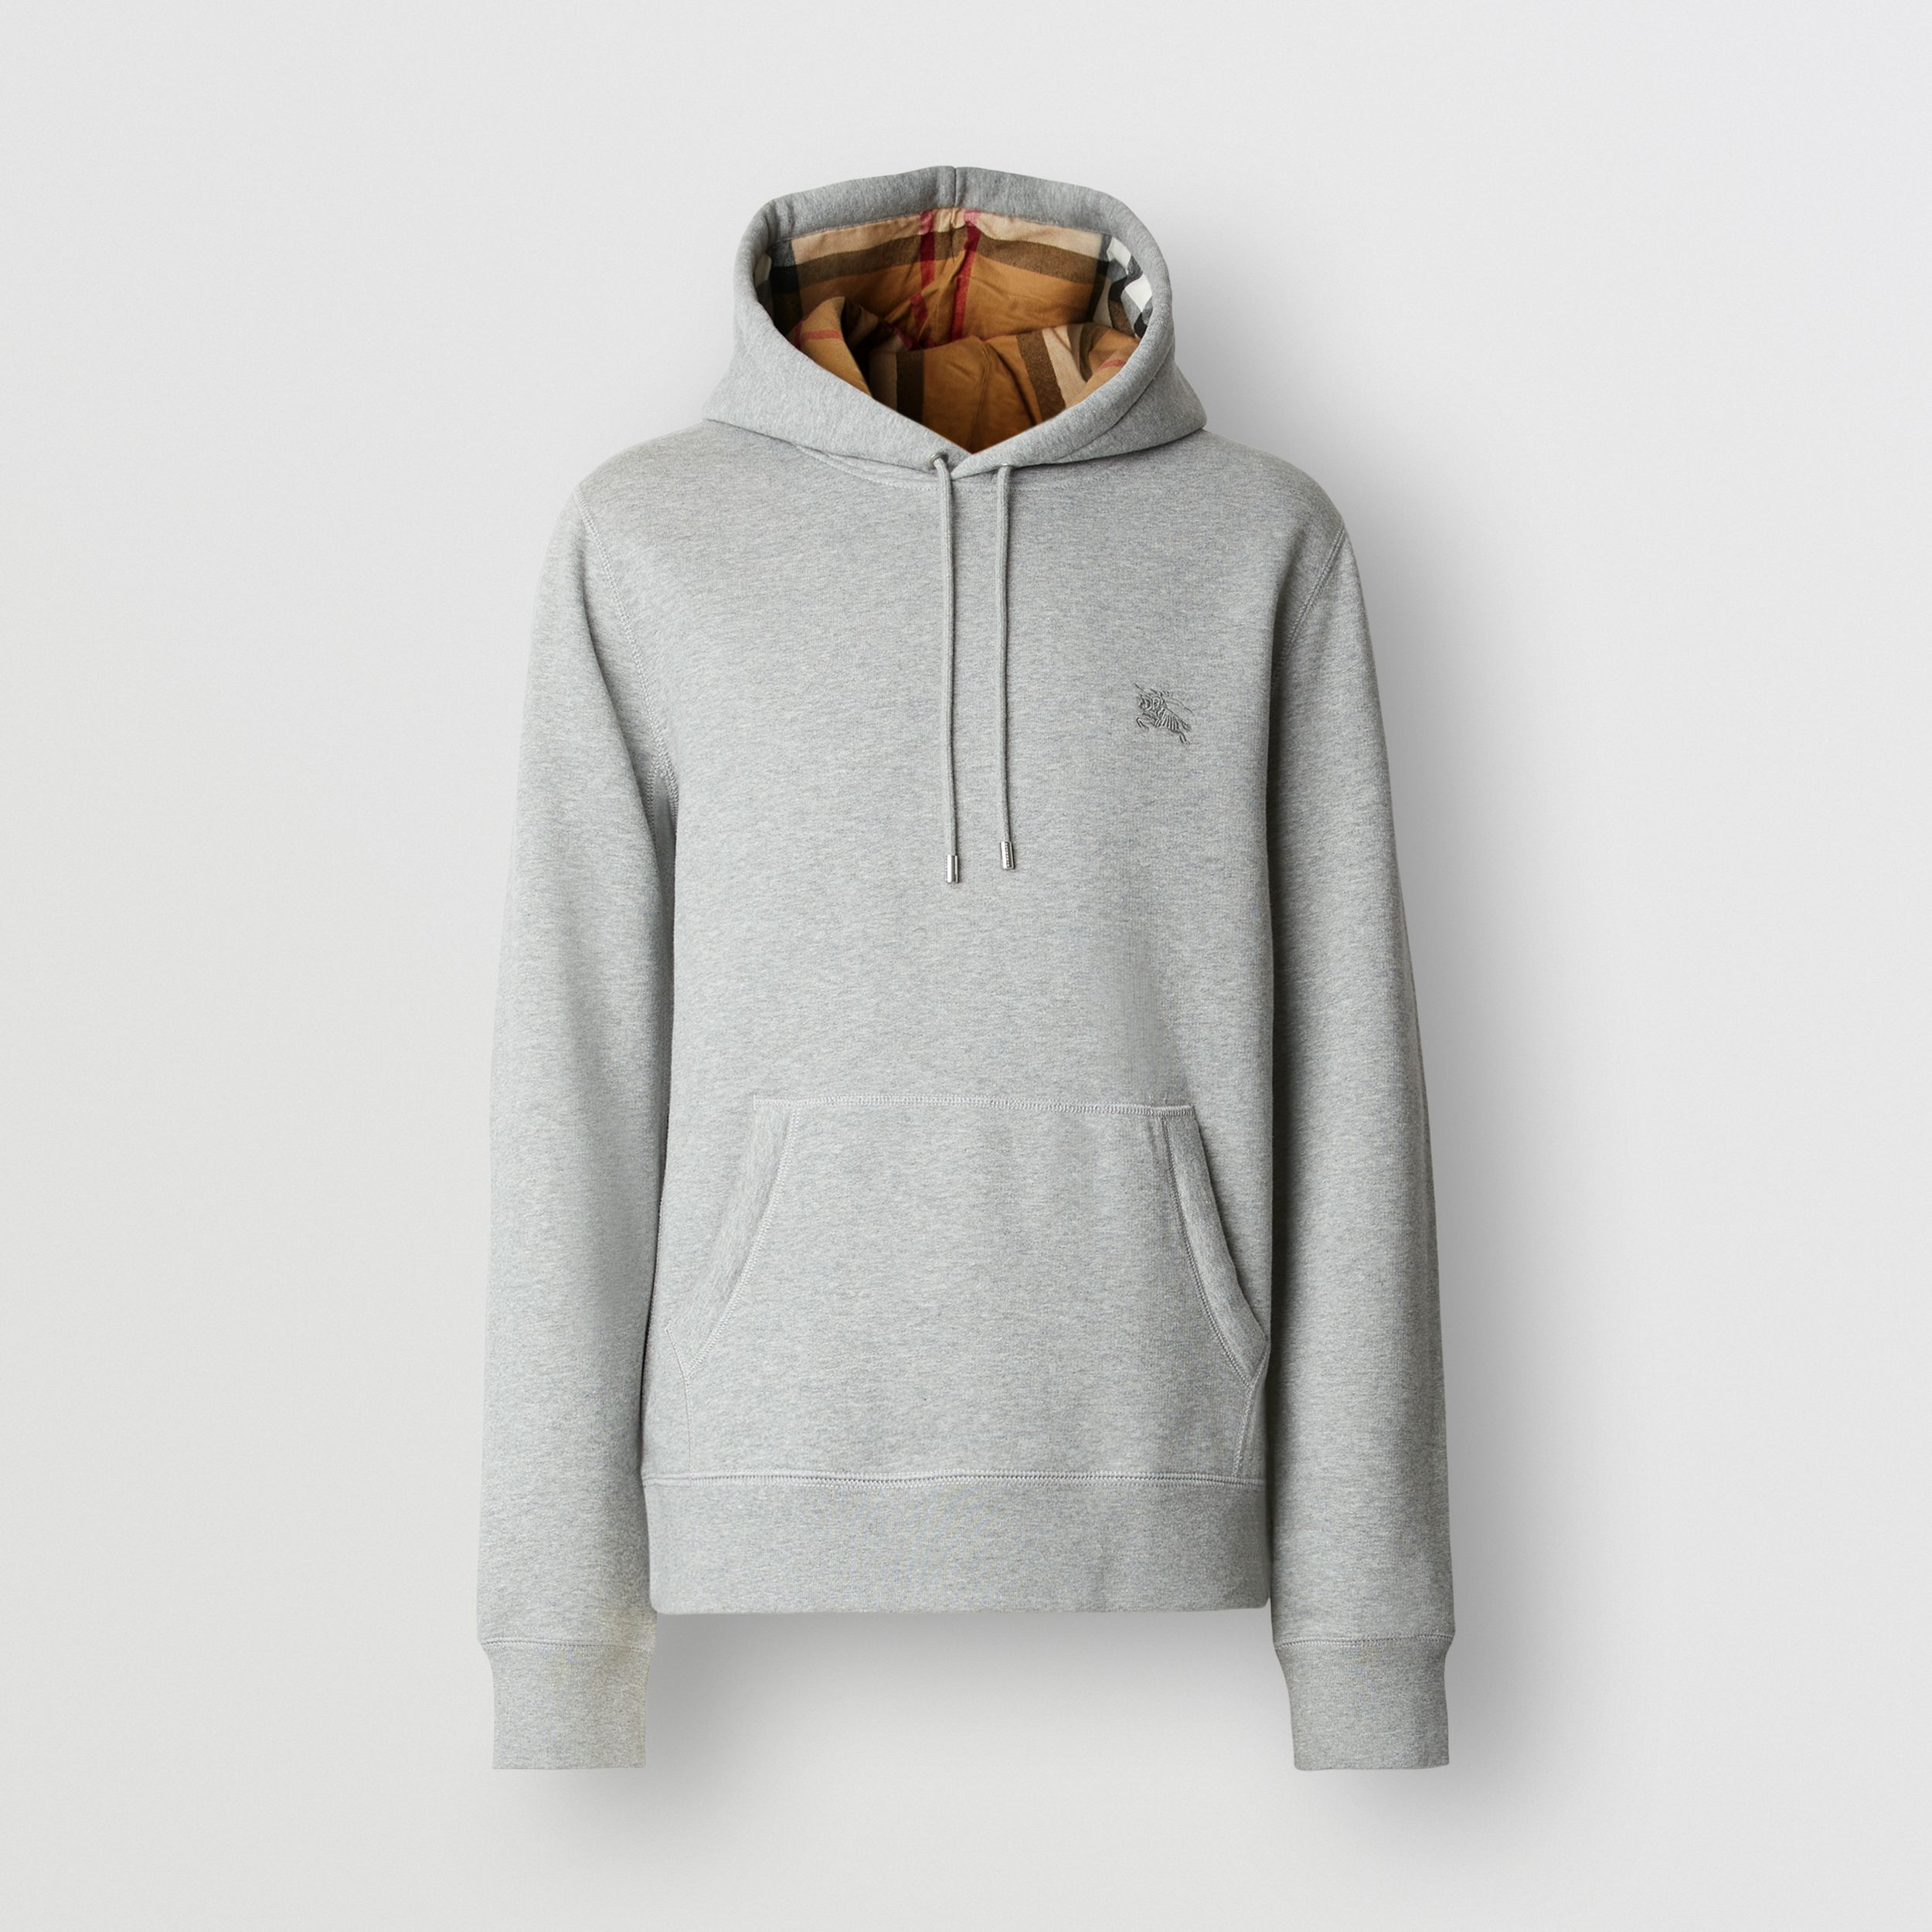 Embroidered EKD Cotton Blend Hoodie in Pale Grey Melange - Men | Burberry Canada - 1